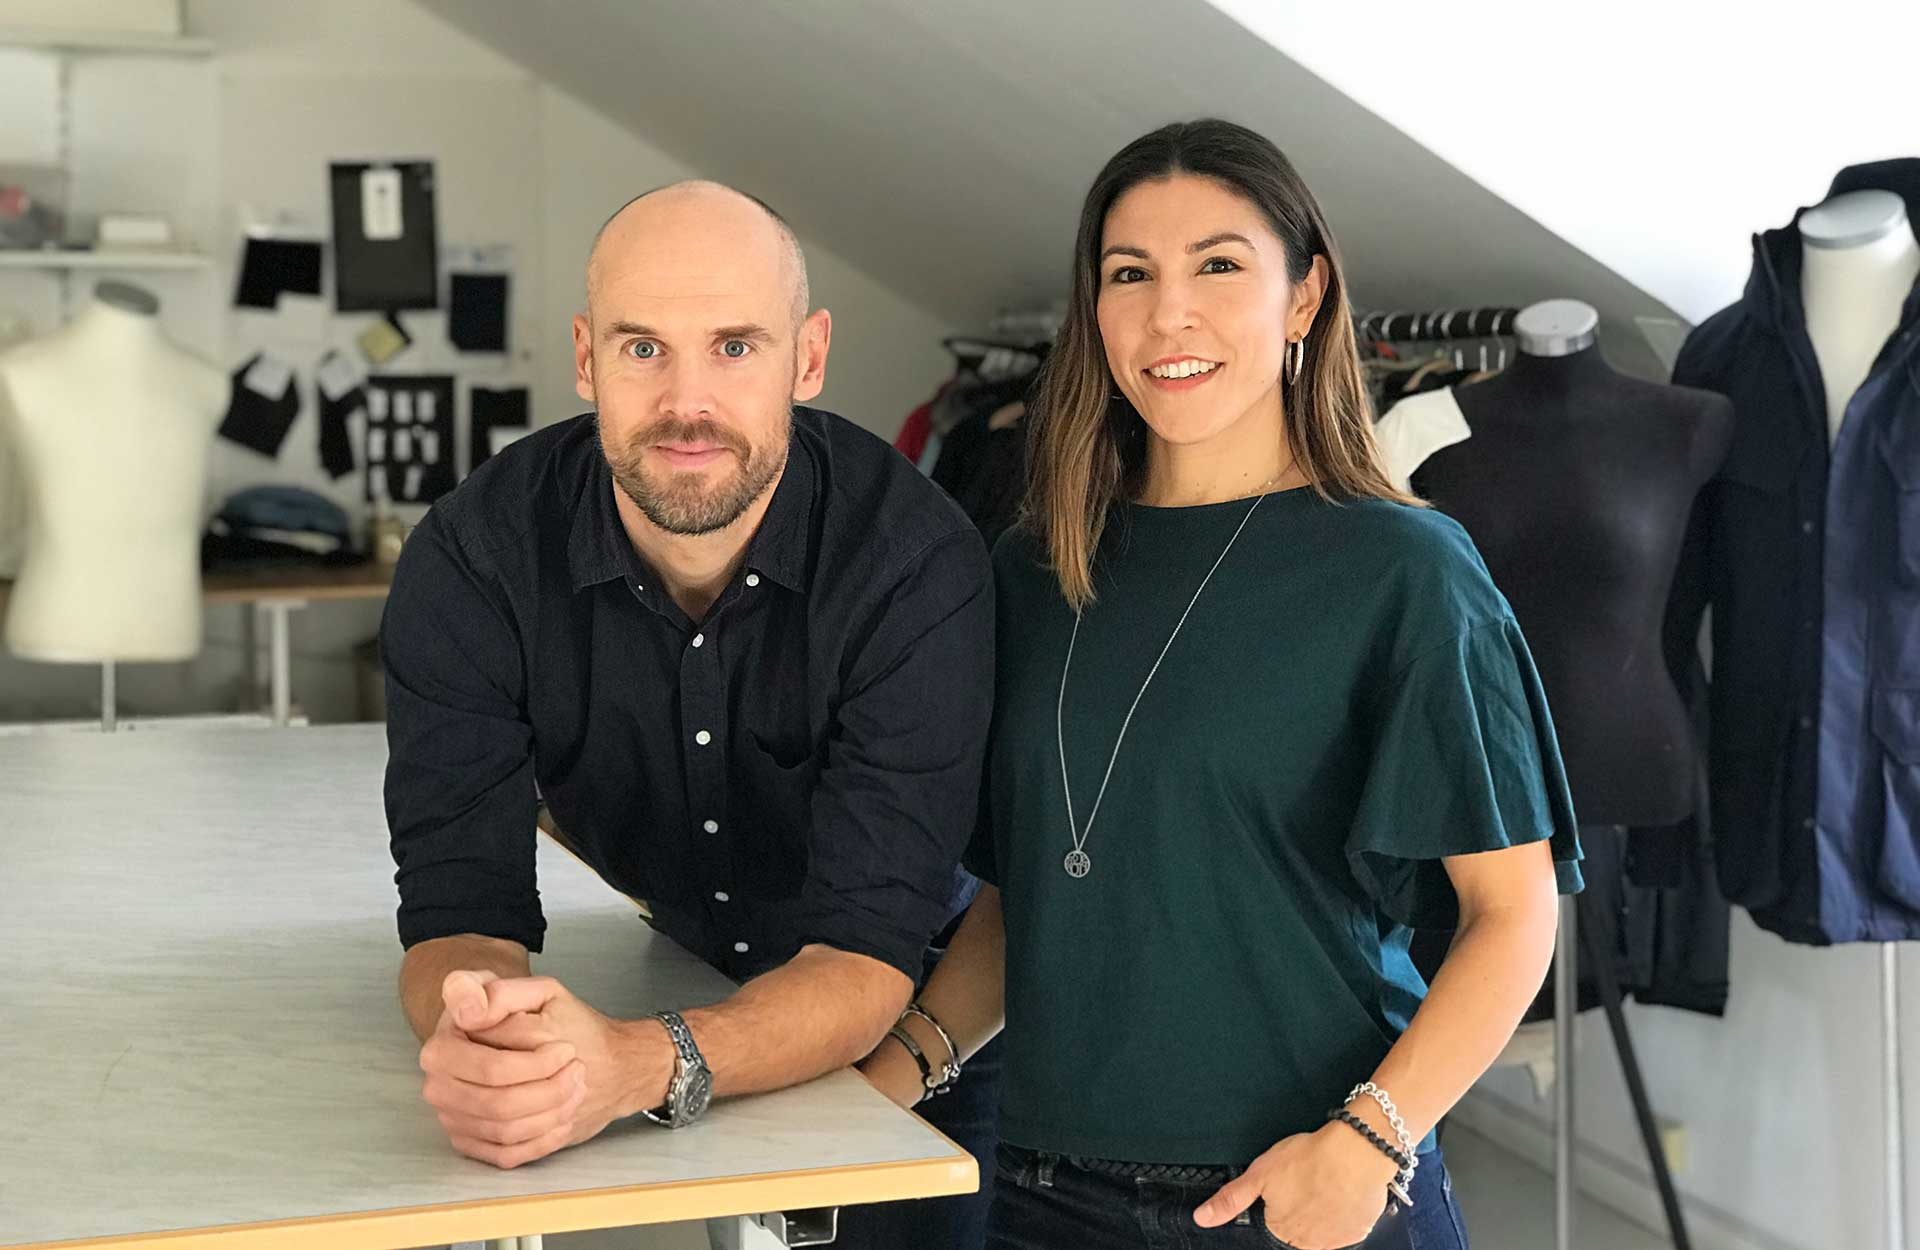 Apparel Entrepreneurship Founders